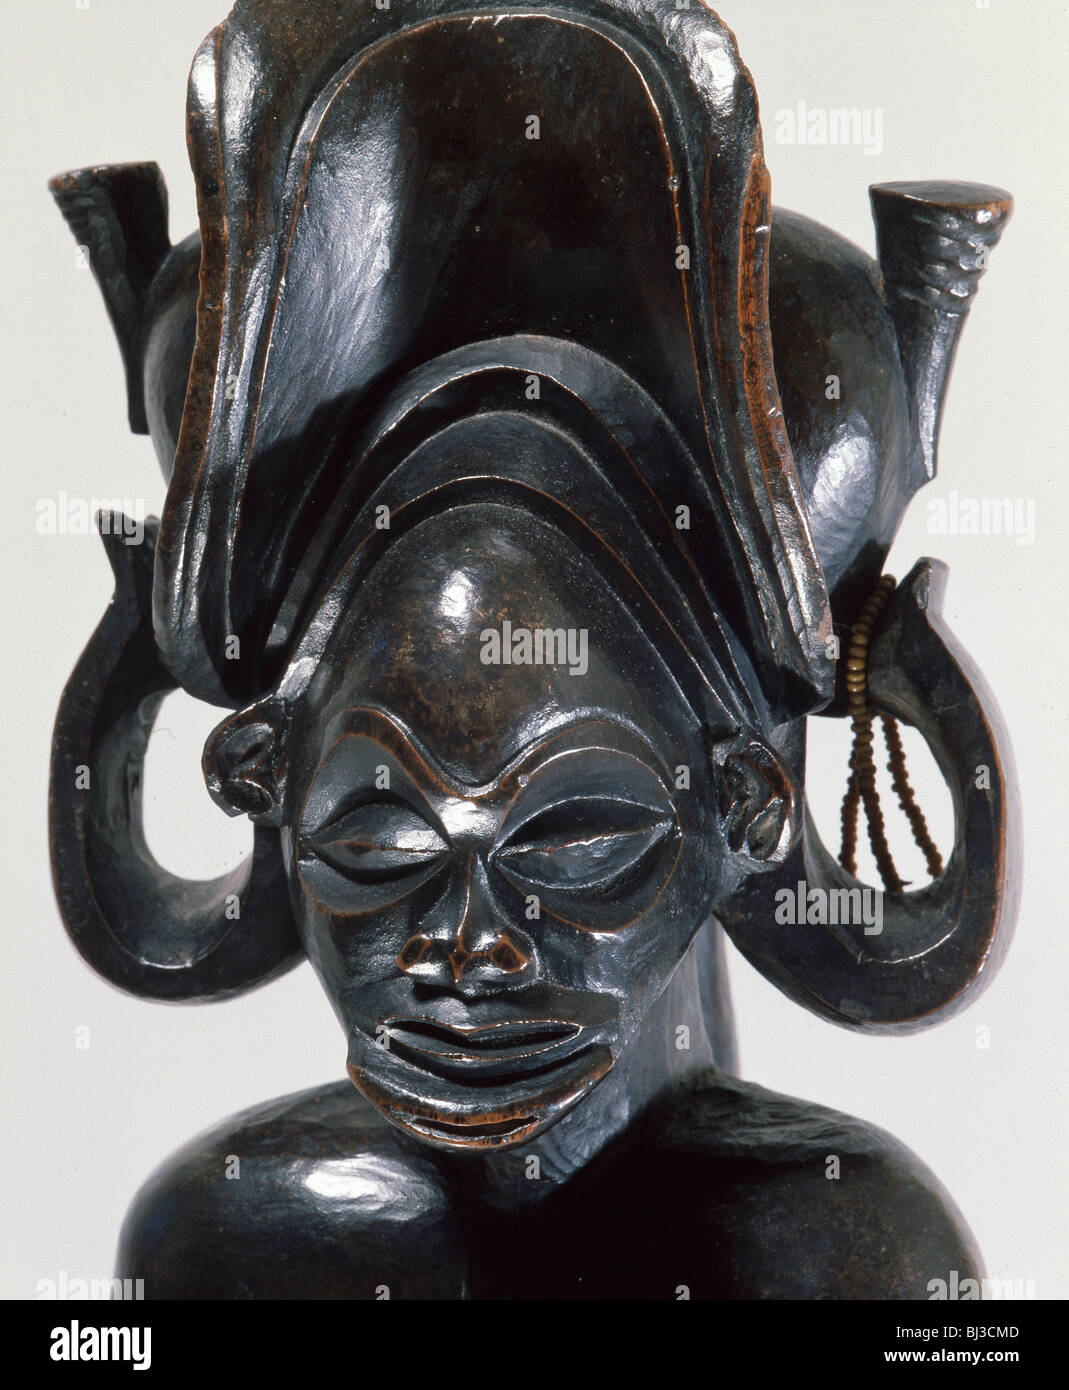 Wooden figure of a Chokwe chief, northern Angola or south-west DR Congo, 19th century. Artist: Werner Forman - Stock Image